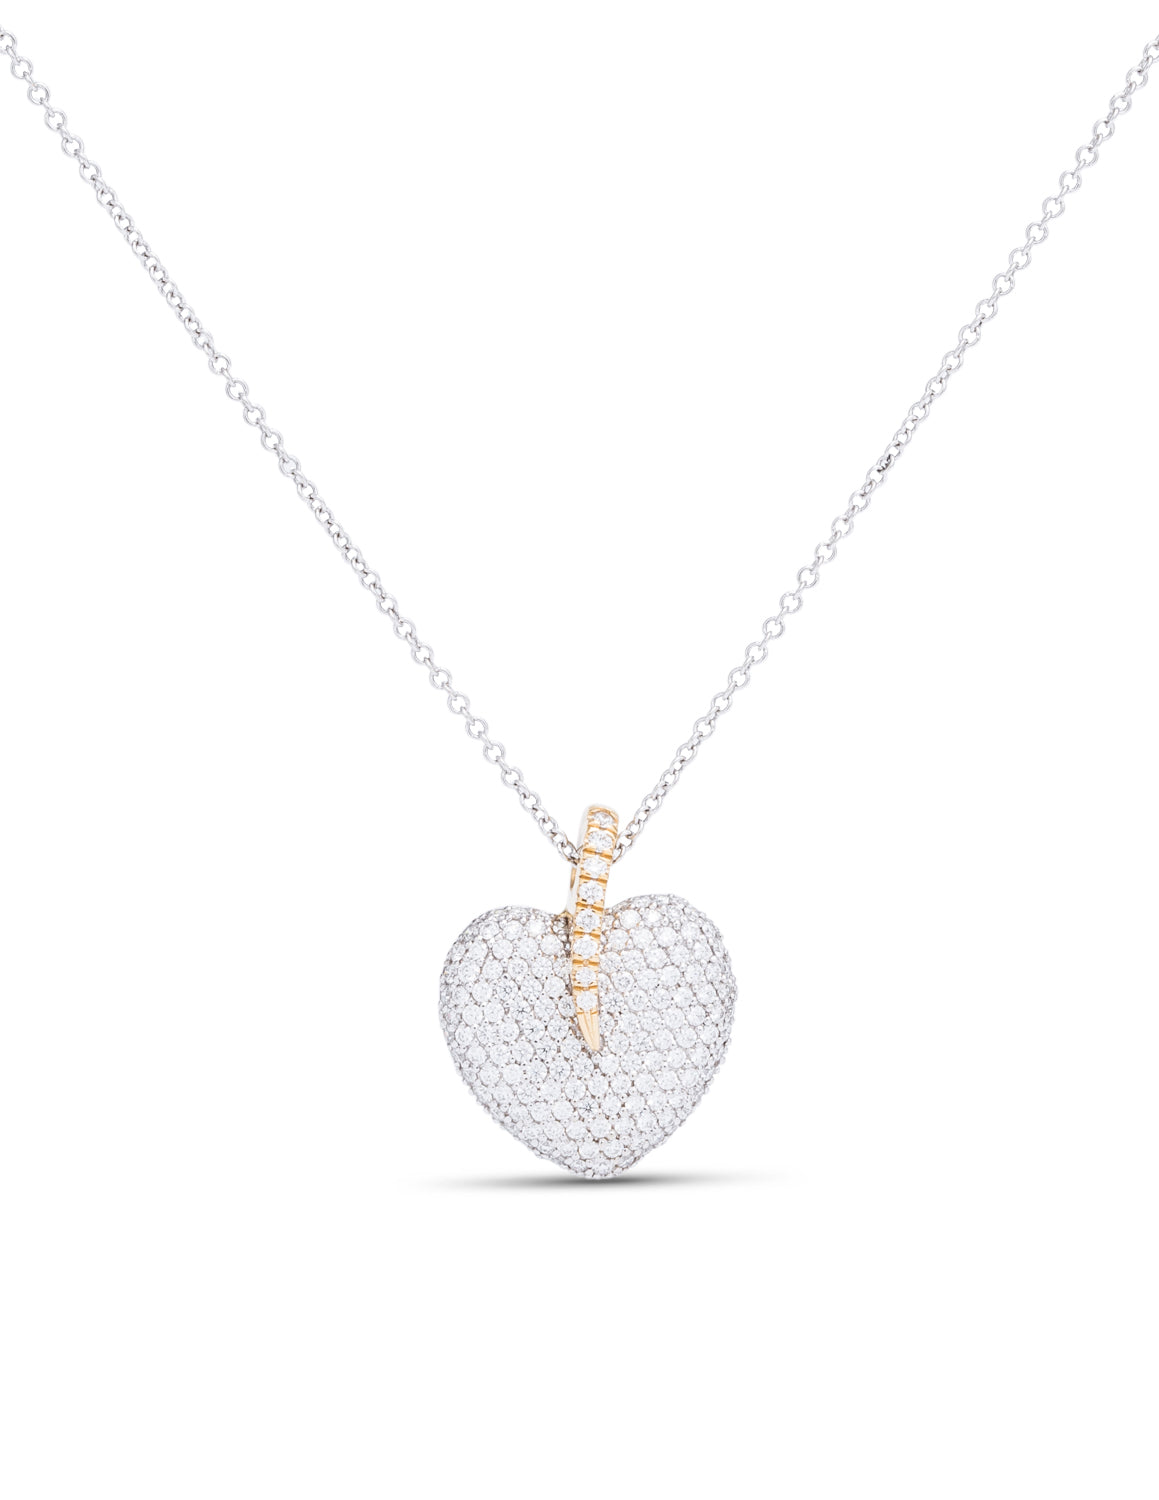 Two-Tone Heart Pendant - Charles Koll Jewellers